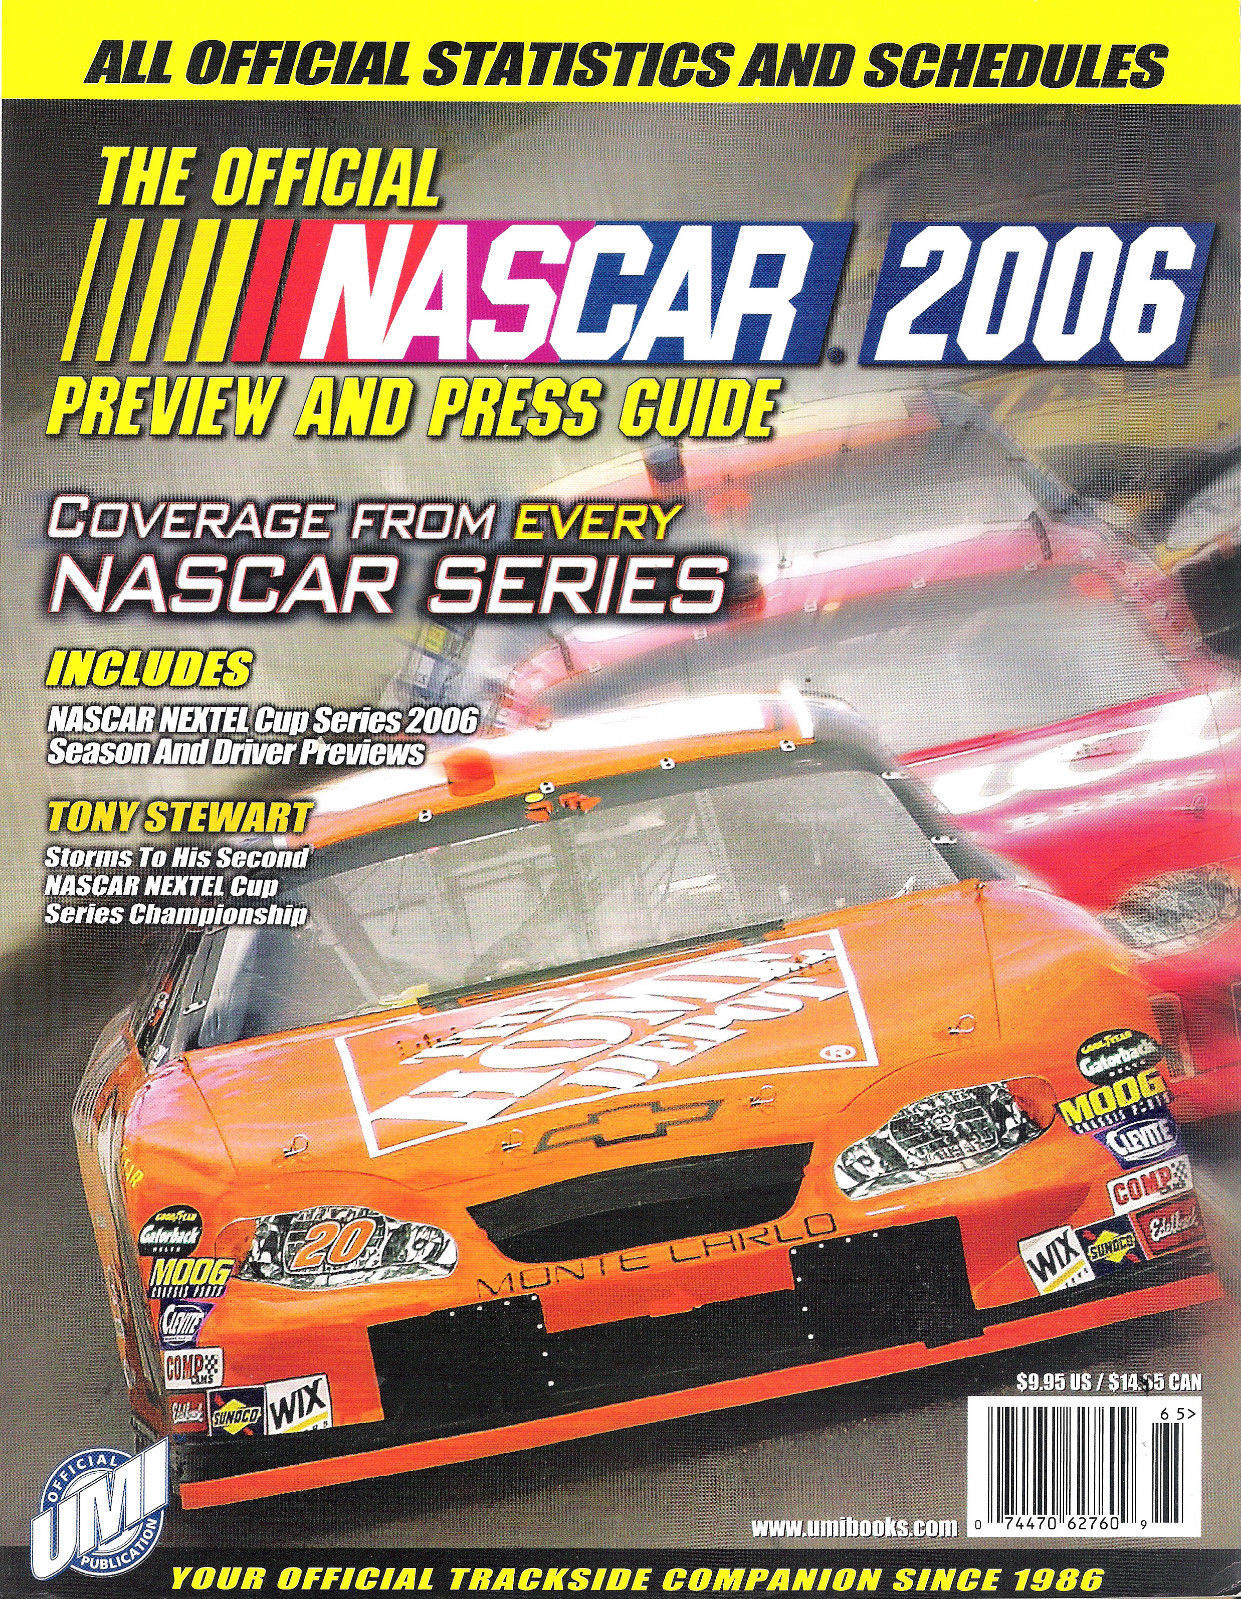 NASCAR 2006 Preview and Press Guide - FROM COLLECTOR'S STOCK